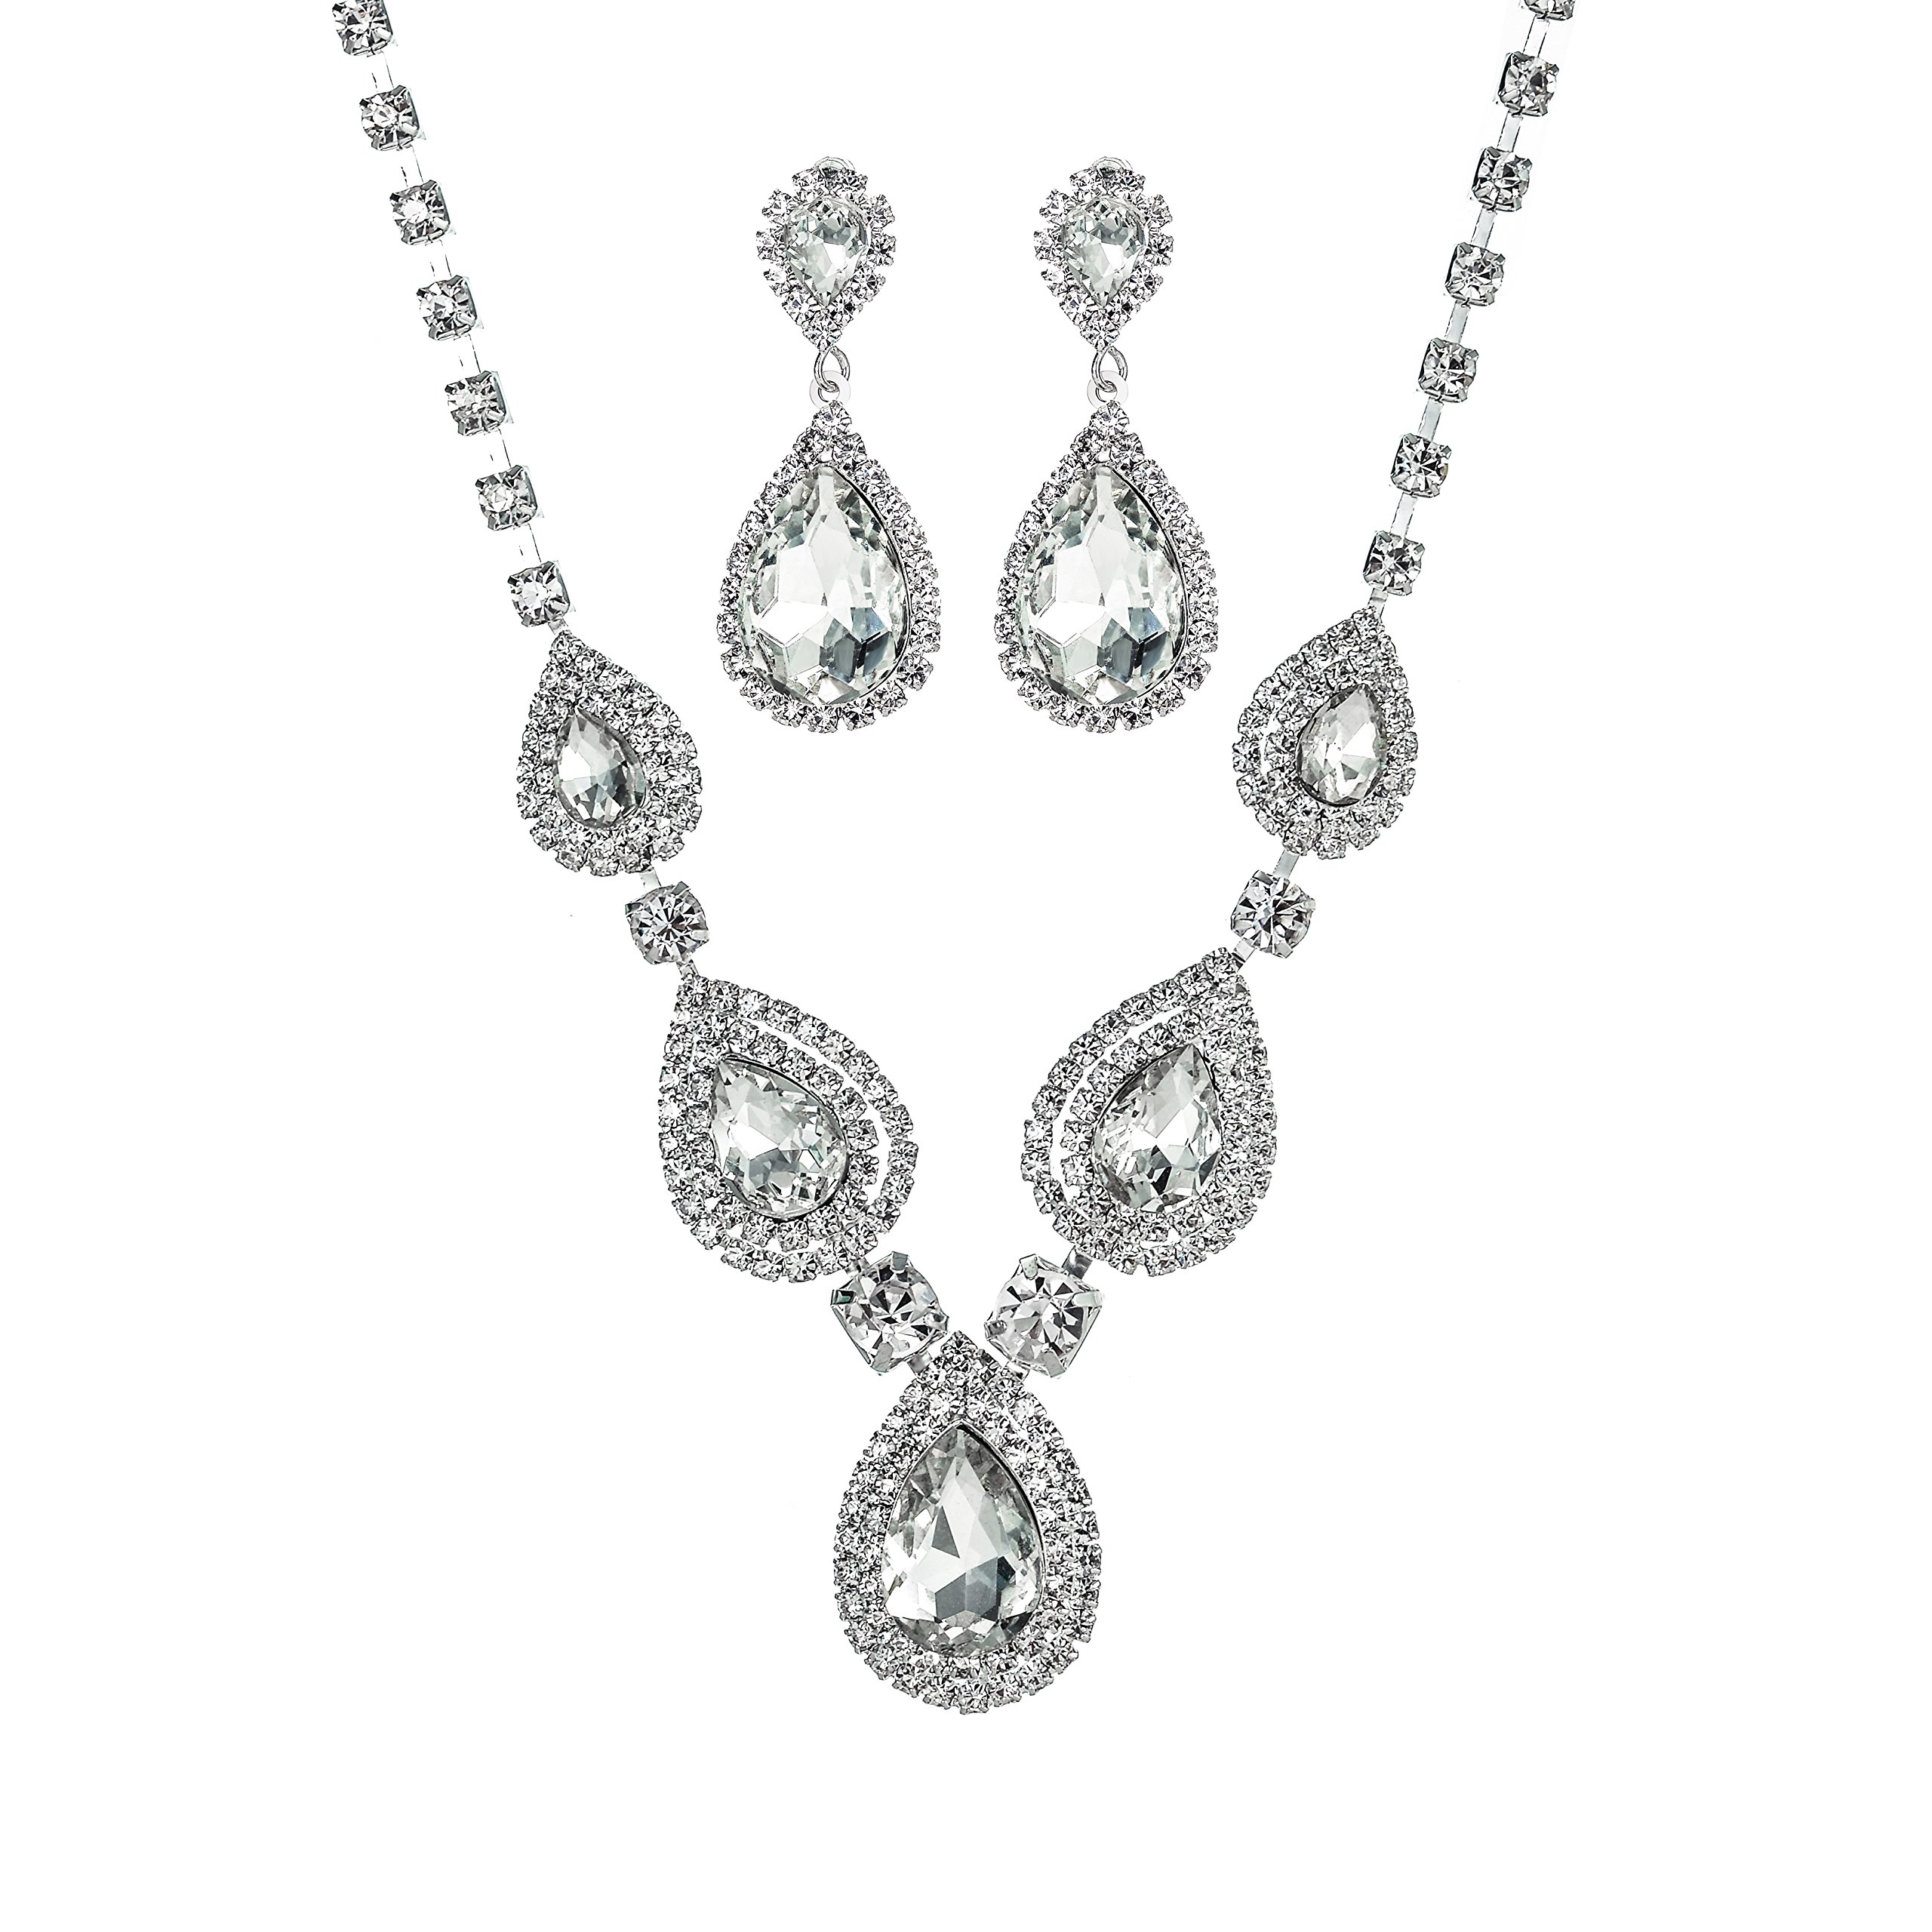 Miraculous Garden Teardrop Crystal Rhinestone Necklace Earrings Jewelry Sets for Wedding (White)